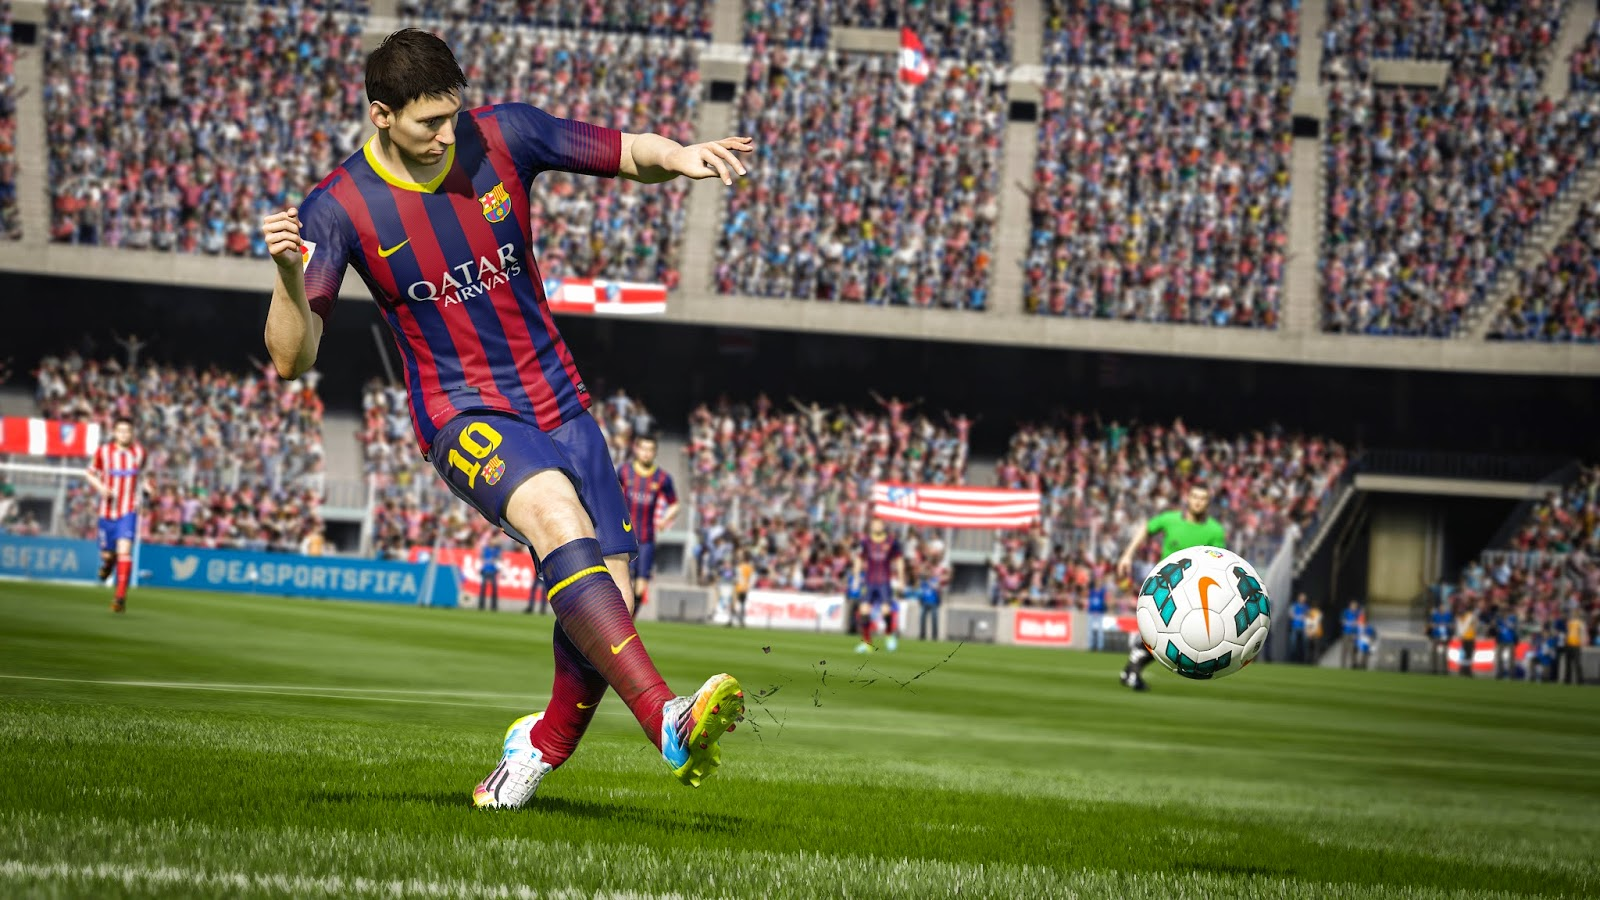 http://www.pre-hackedgames.net/fifa-15-ultimate-team-coins/